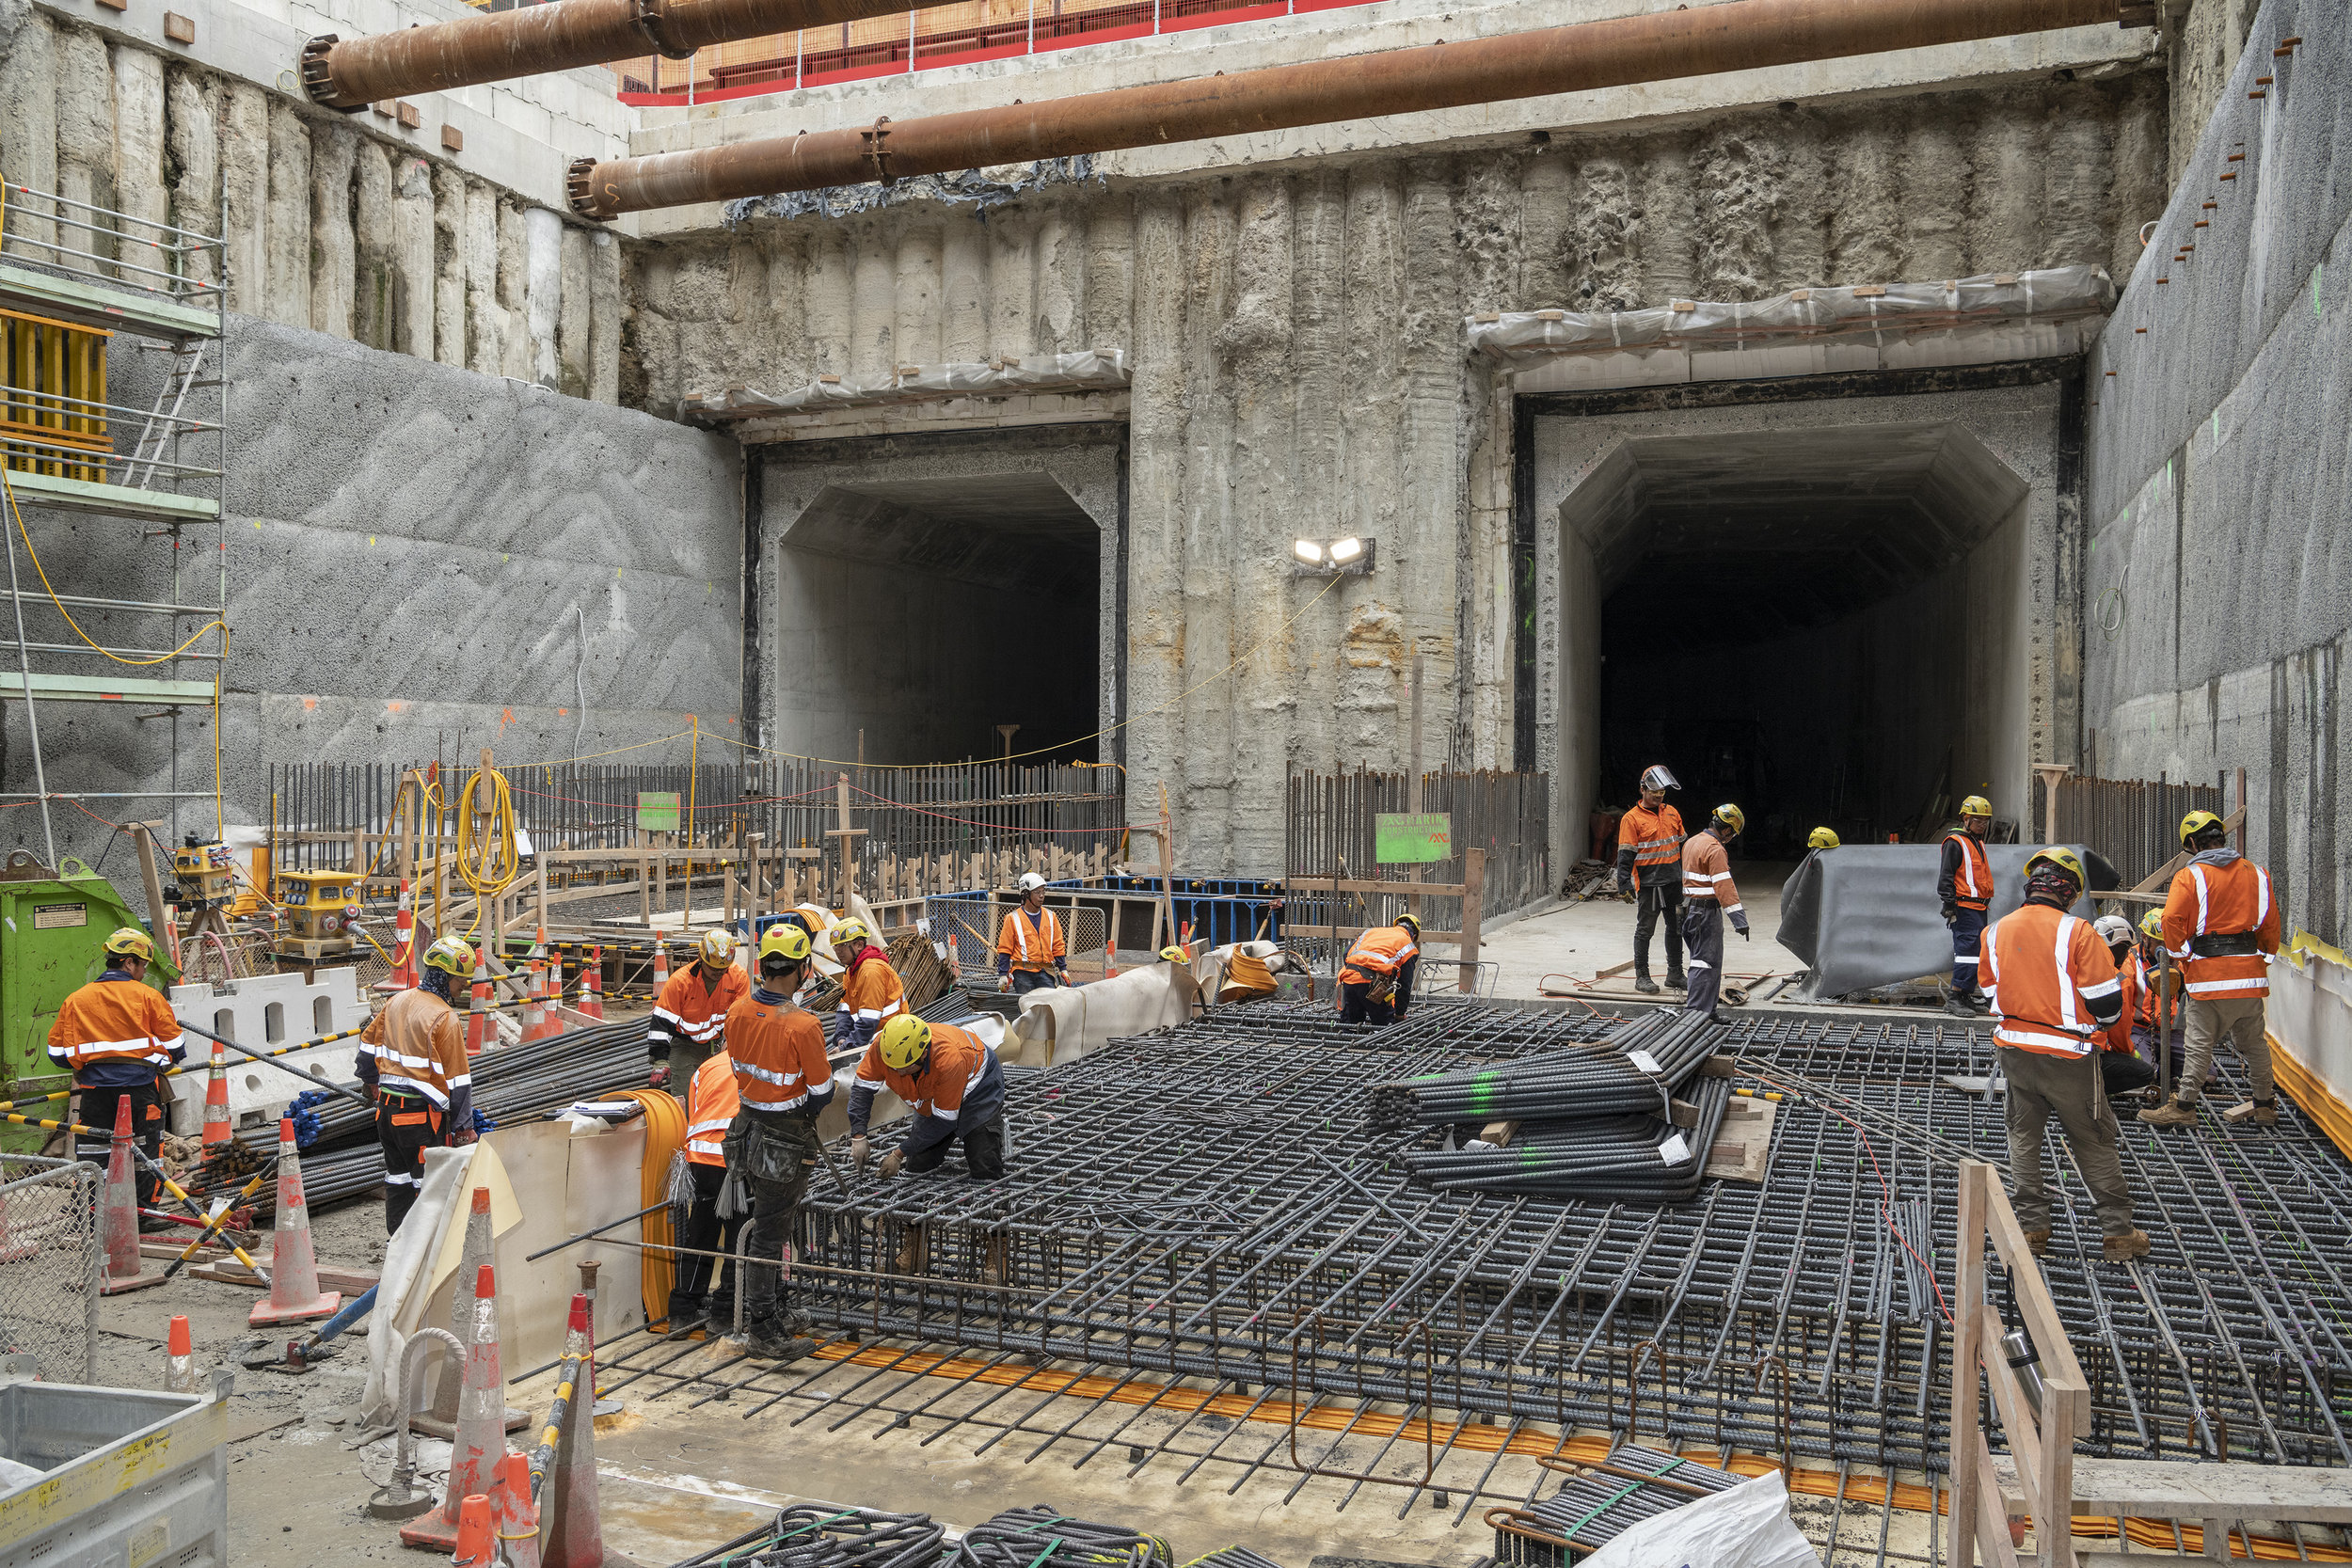 CPO tunnels 9 May 2019